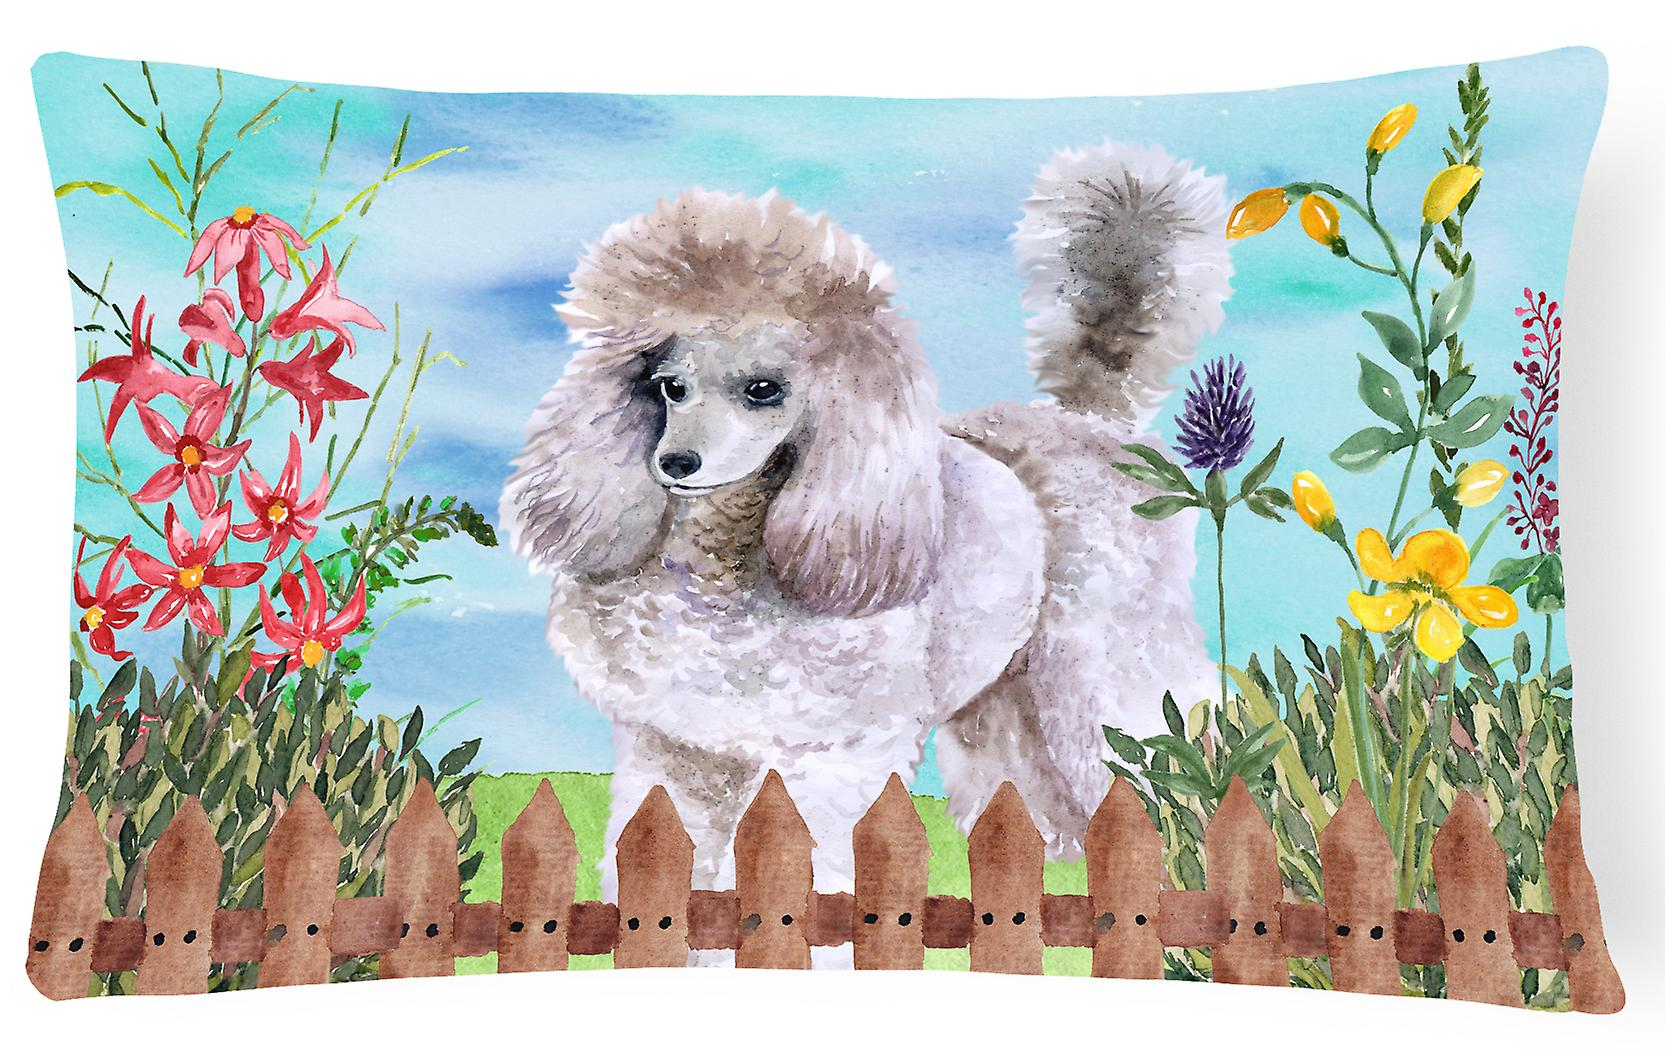 Poodle Spring Canvas Carolines Treasures Decorative Ck1227pw1216 Fabric Pillow xBdoCe